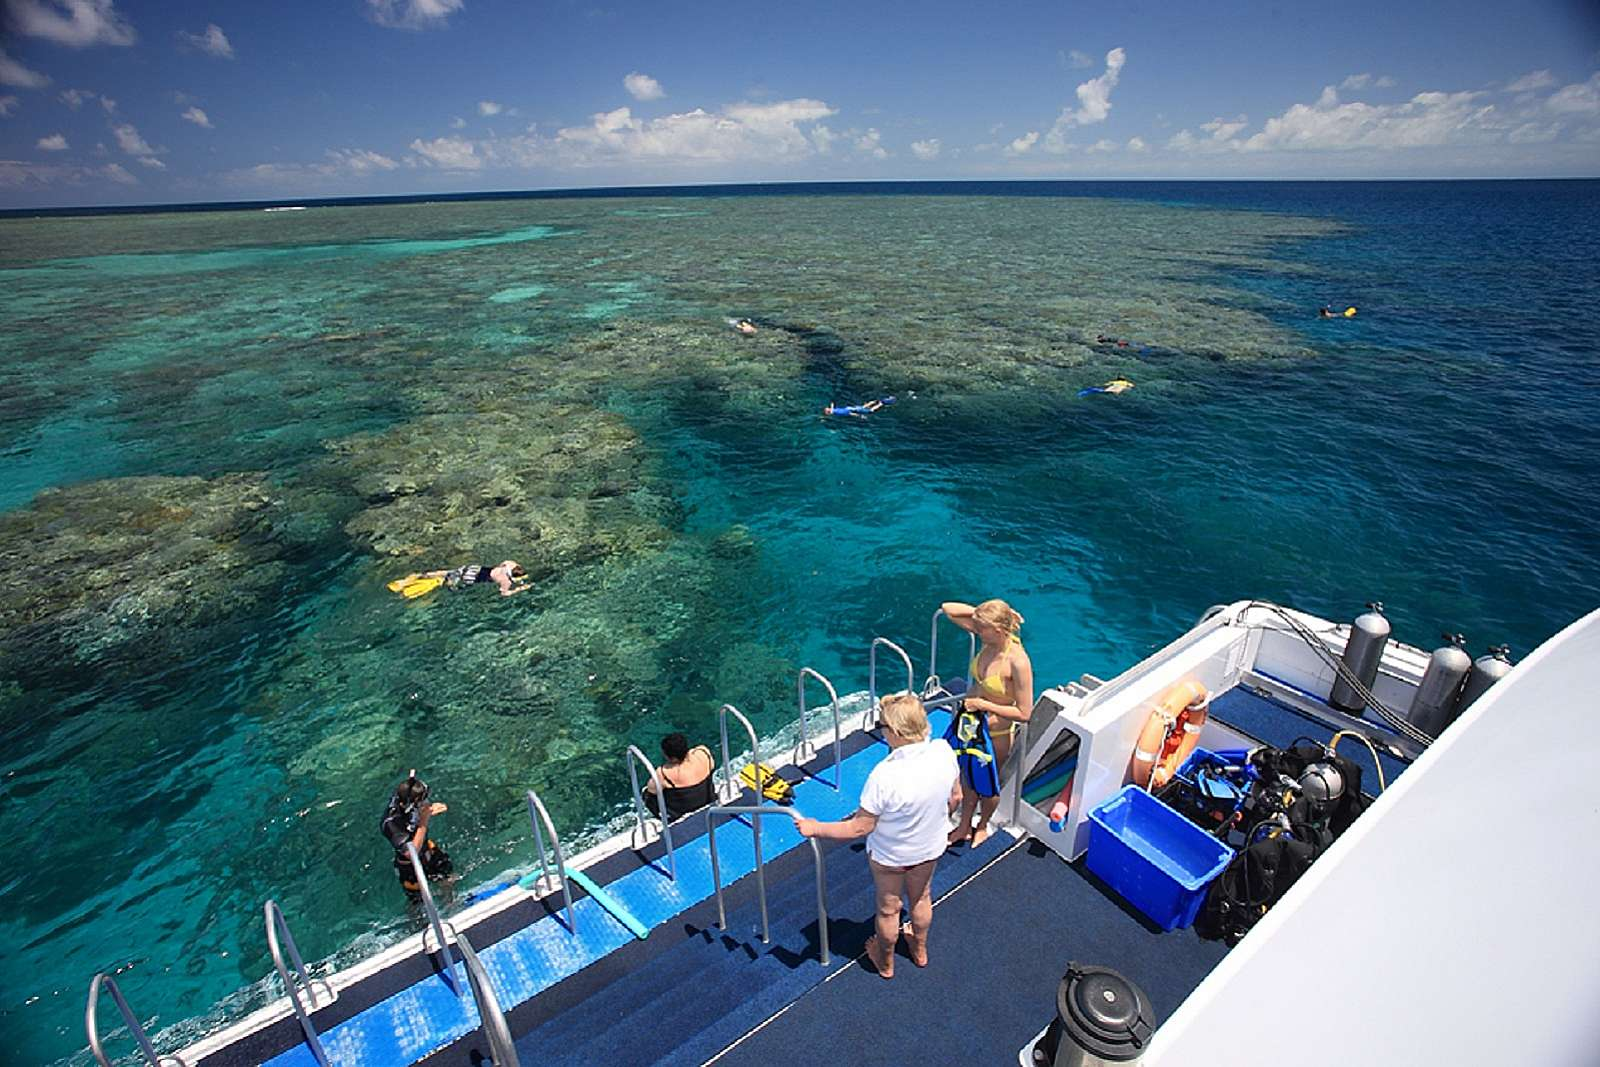 Image for Calypso Snorkel and Dive - Calypso Snorkel & Dive - Introductory Diving